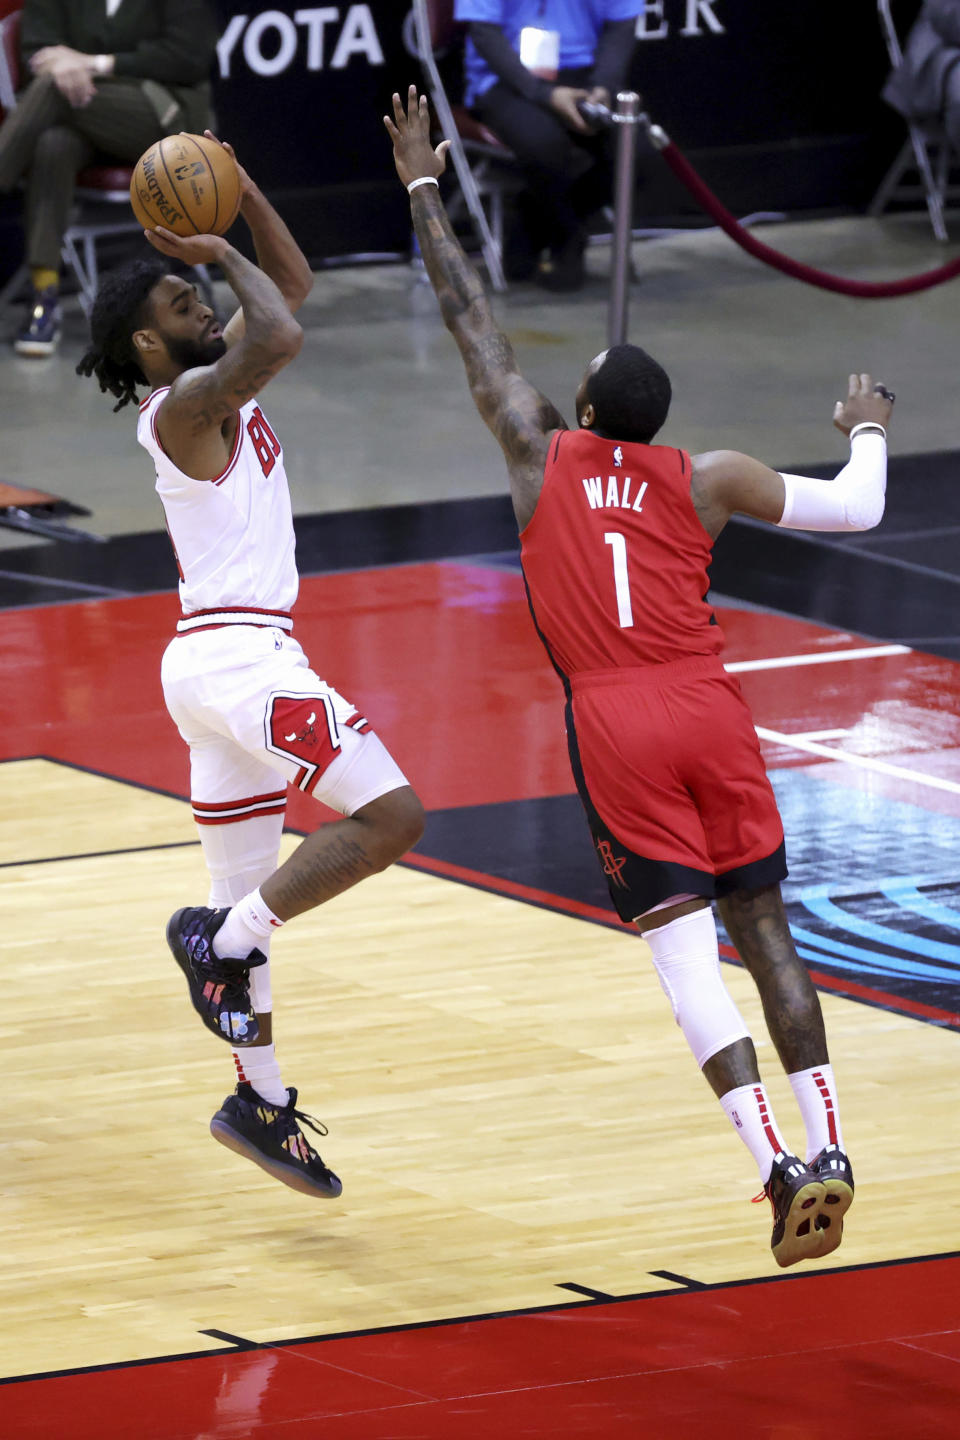 chicago Bulls' Coby White, left, puts up a jump shot ahead of Houston Rockets' John Wall (1) during the first quarter of an NBA basketball game Monday, Feb. 22, 2021, in Houston. (Carmen Mandato/Pool Photo via AP)of an NBA basketball game Monday, Feb. 22, 2021, in Houston. (Carmen Mandato/Pool Photo via AP)